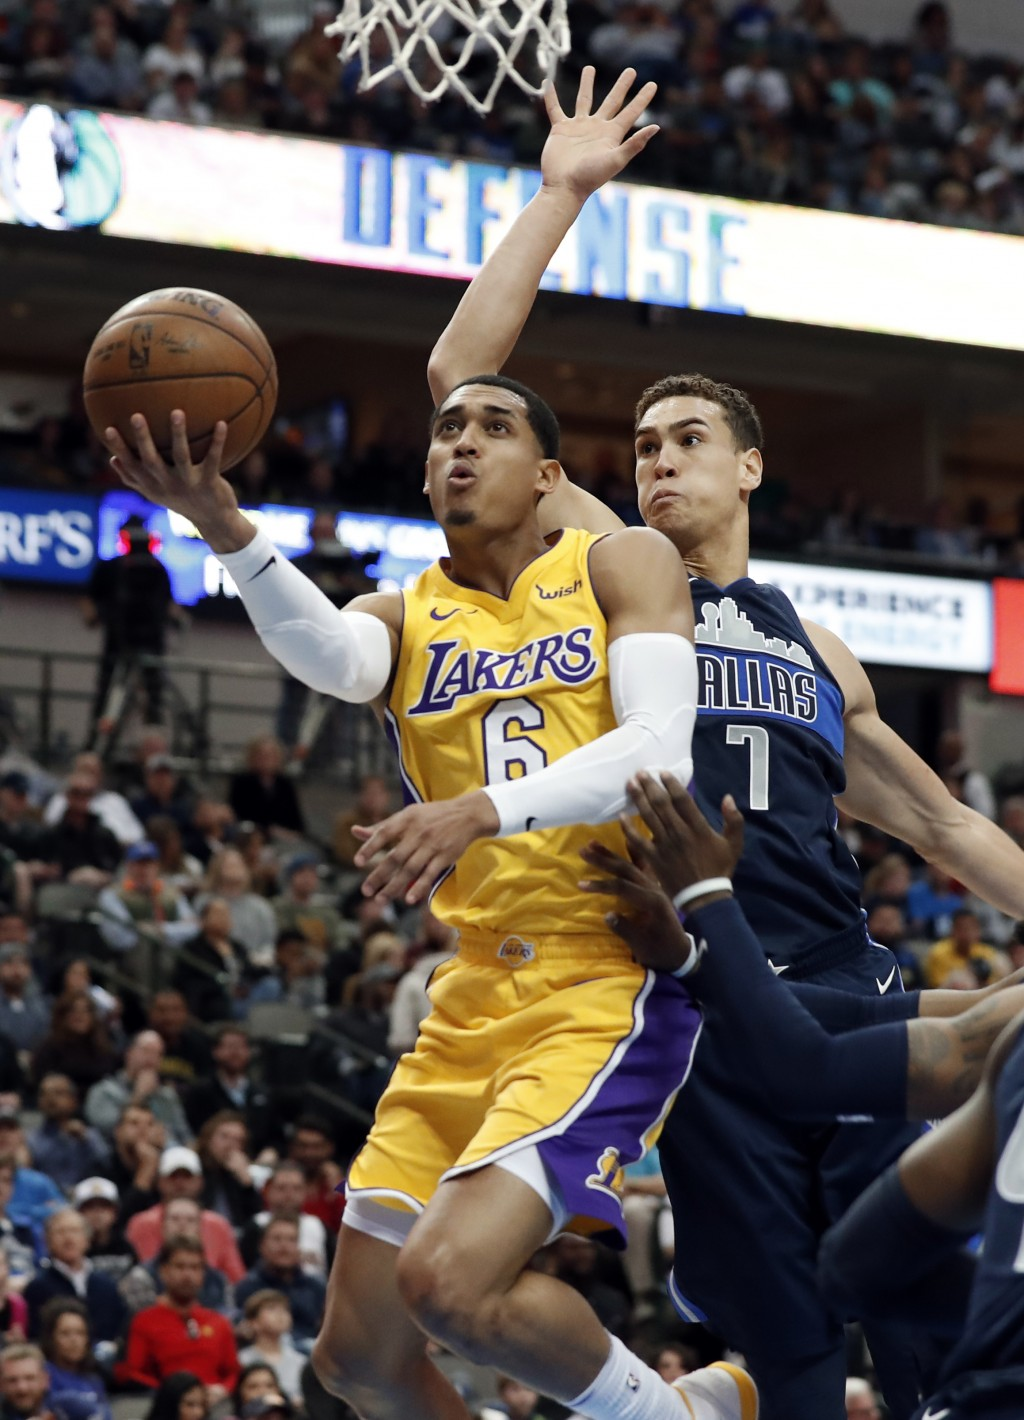 Los Angeles Lakers guard Jordan Clarkson (6) goes up for a shot after getting past Dallas Mavericks forward Dwight Powell (7) in the first half of an